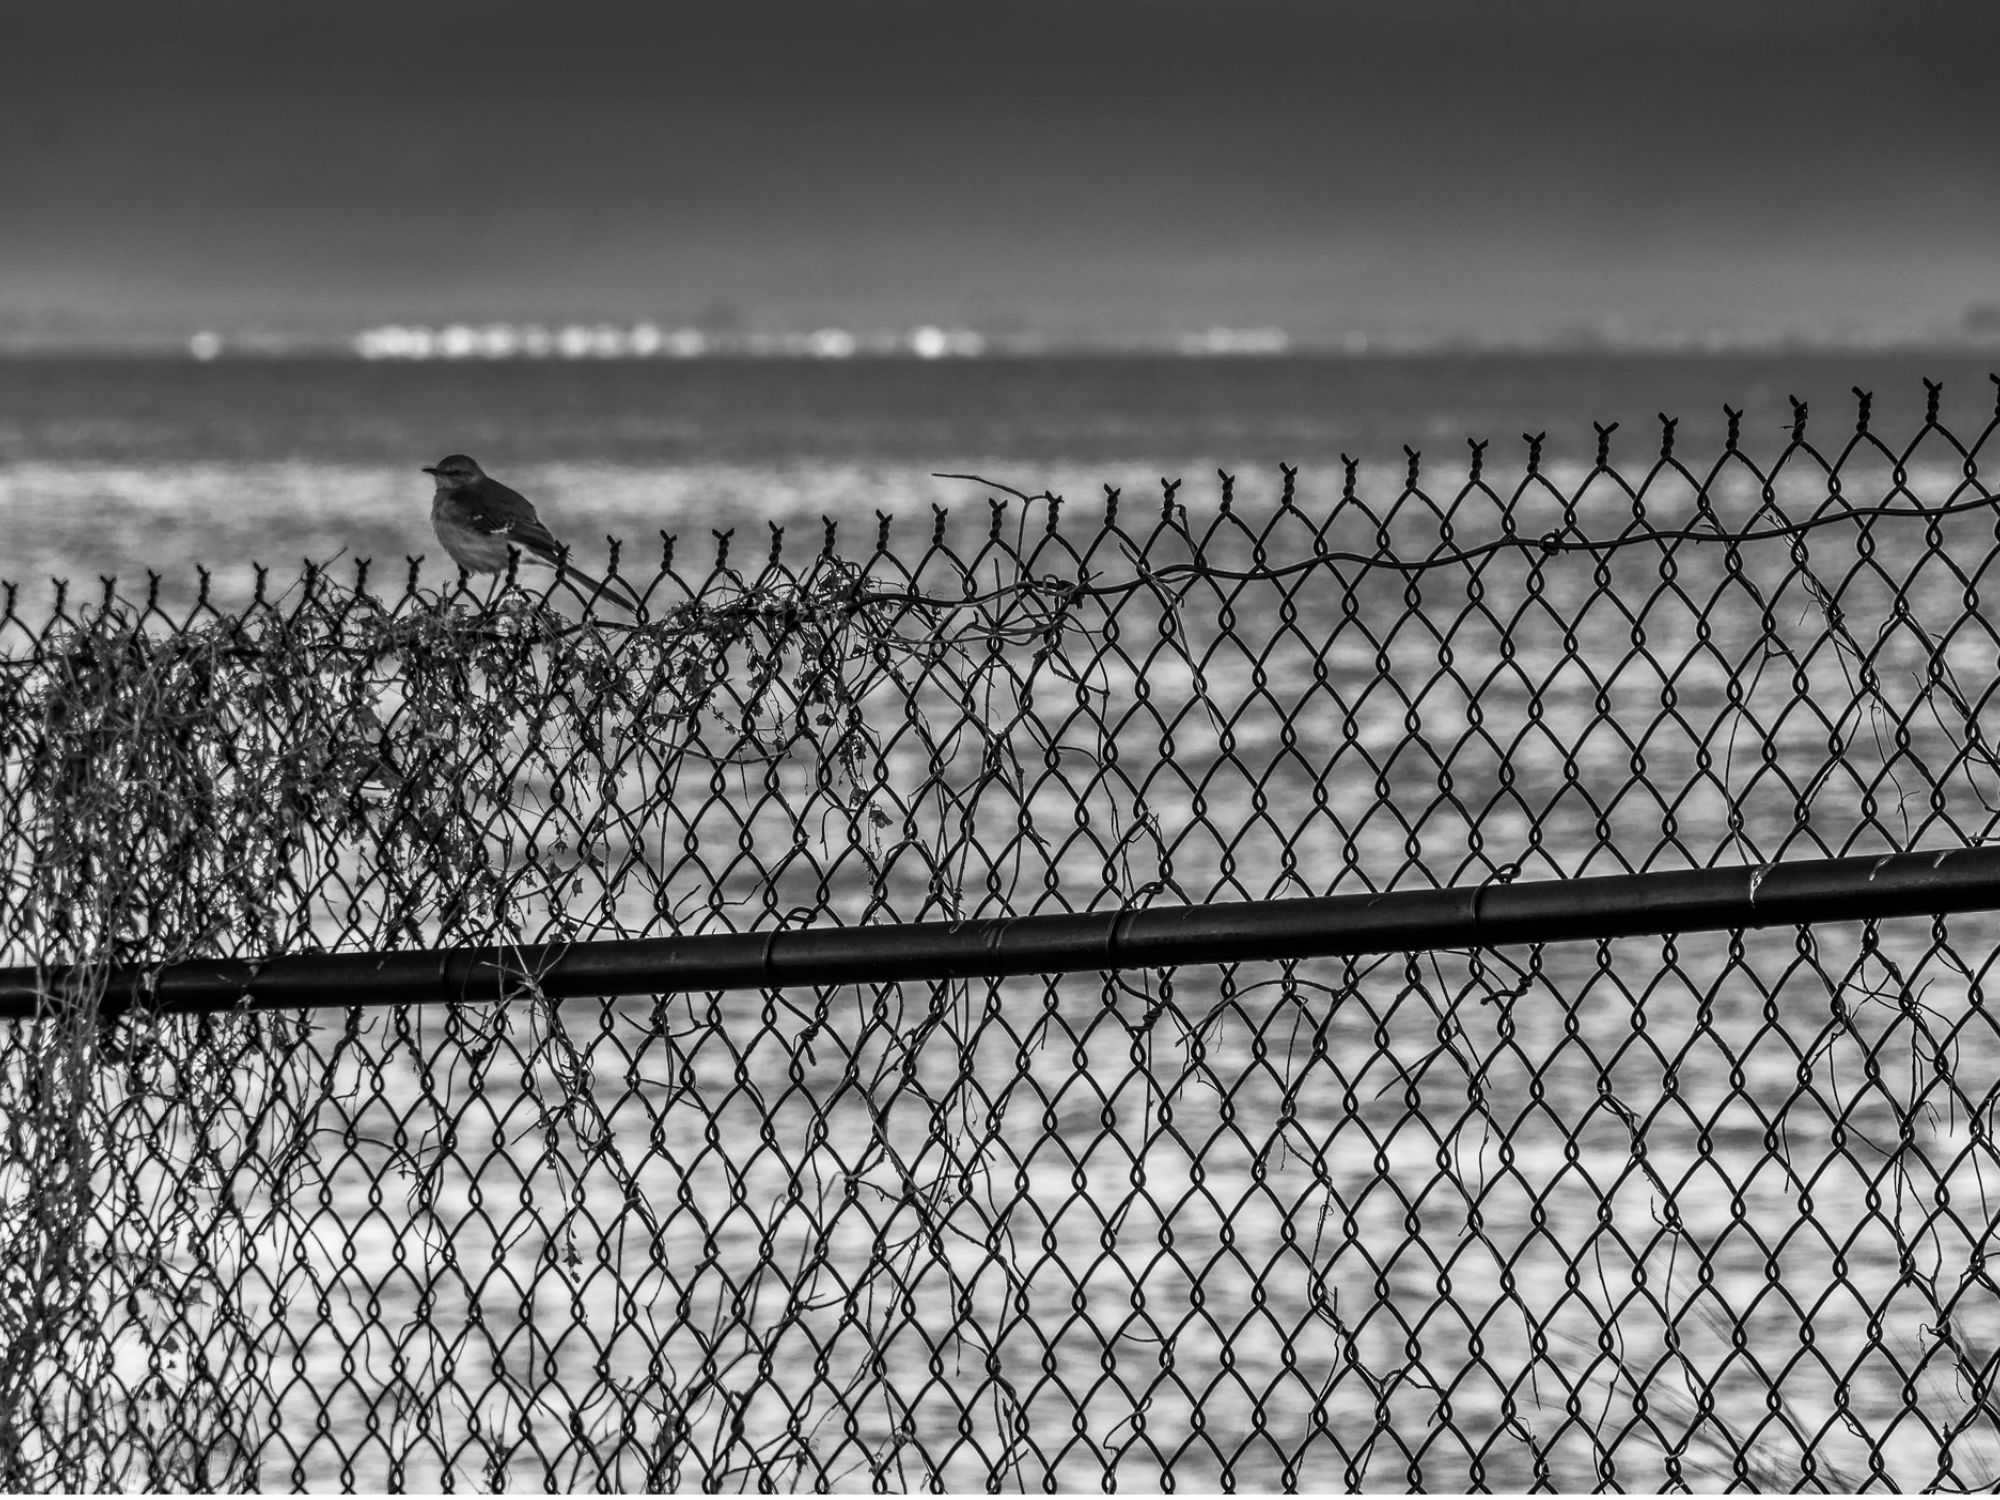 """Photo: Spencer Harris. """"Bird on a Fence."""" Licensed under CC BY 2.0"""